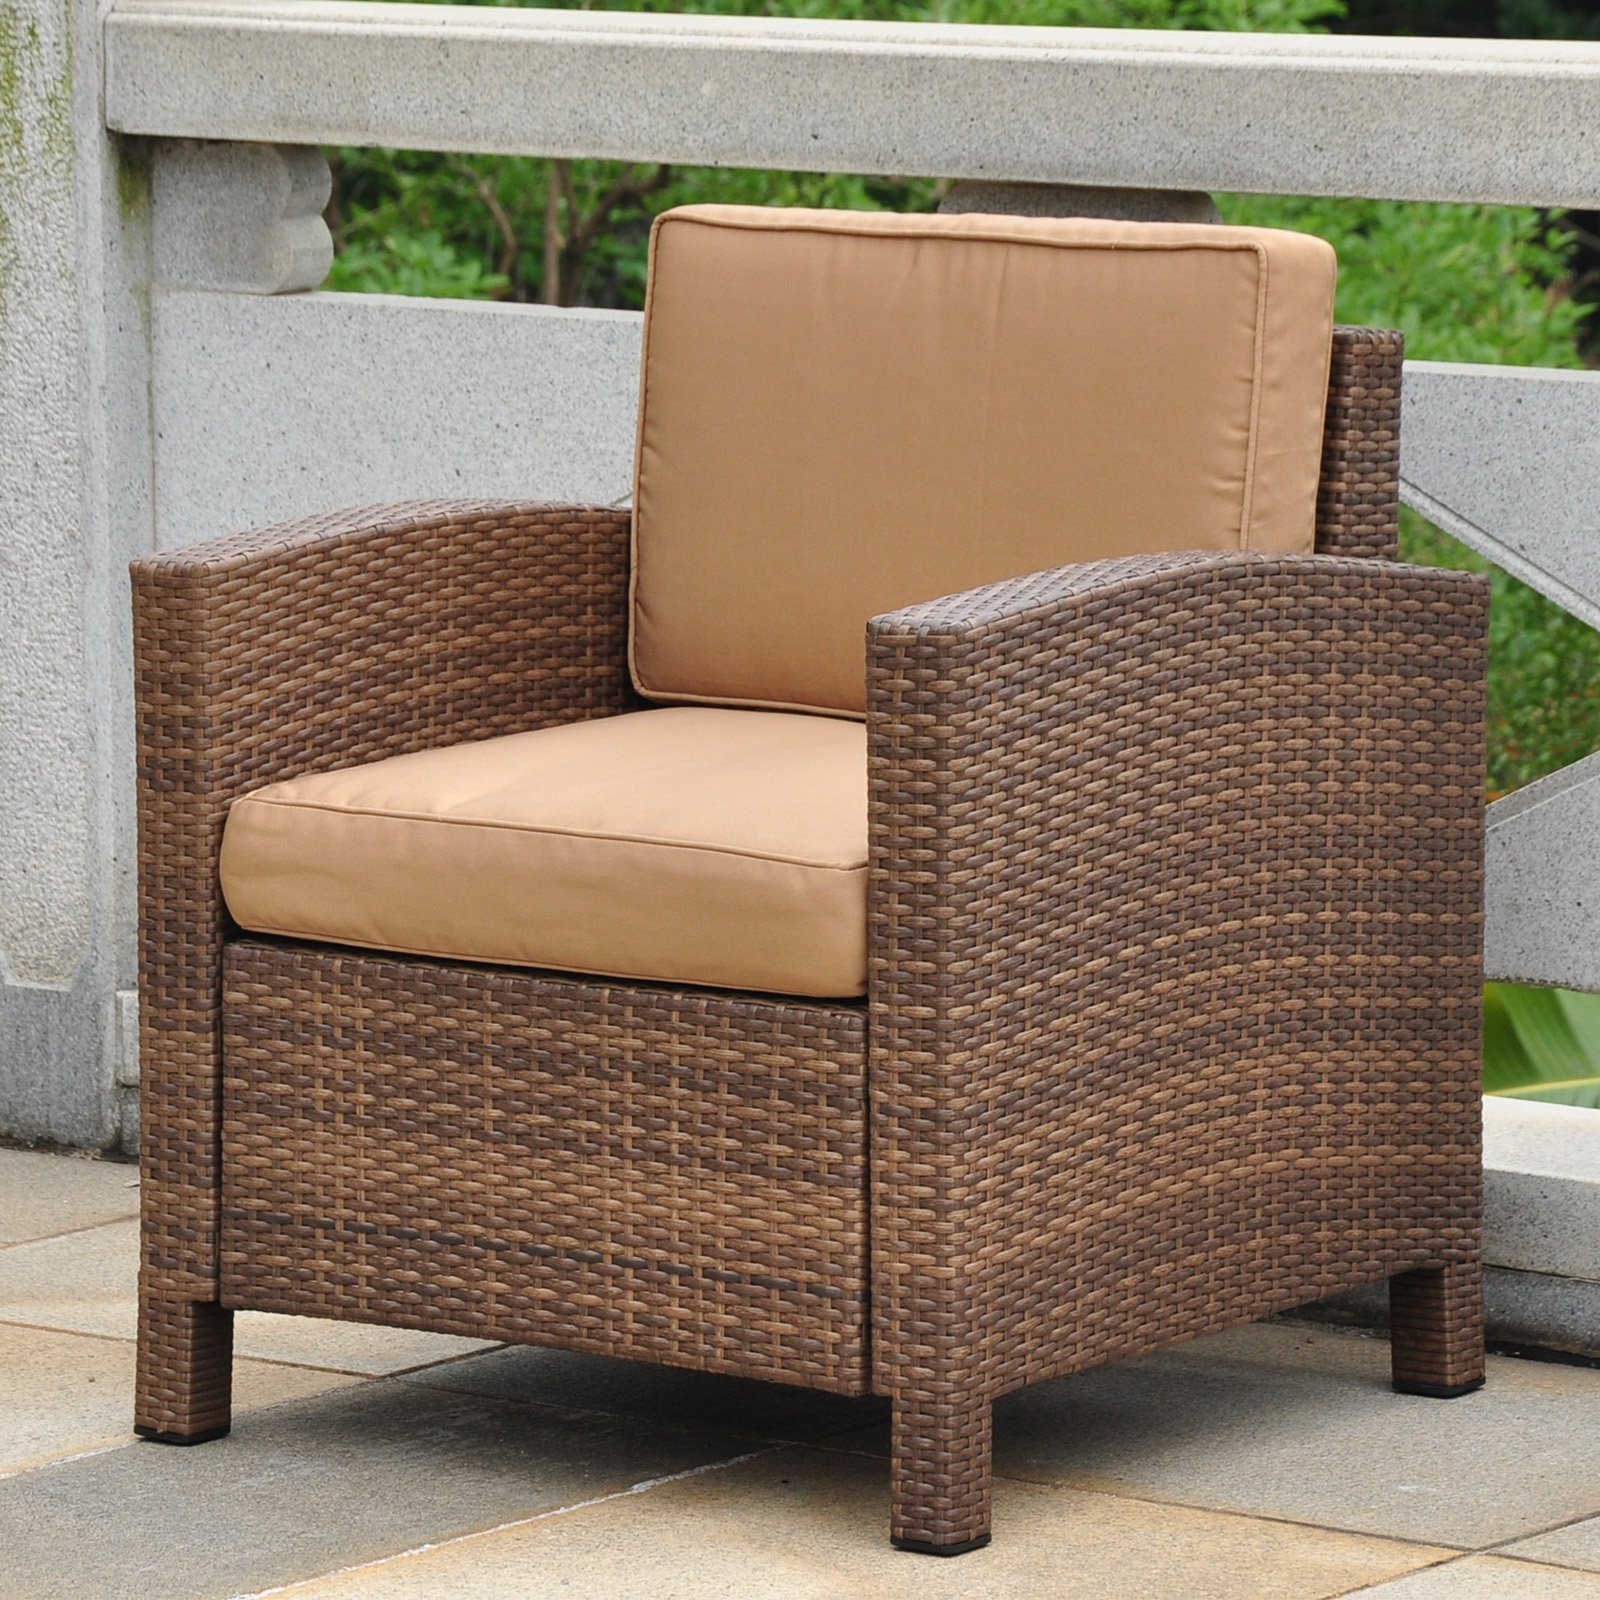 Outside Lounge Chairs International Caravan Barcelona All Weather Wicker Contemporary Patio Lounge Chair With Cushions